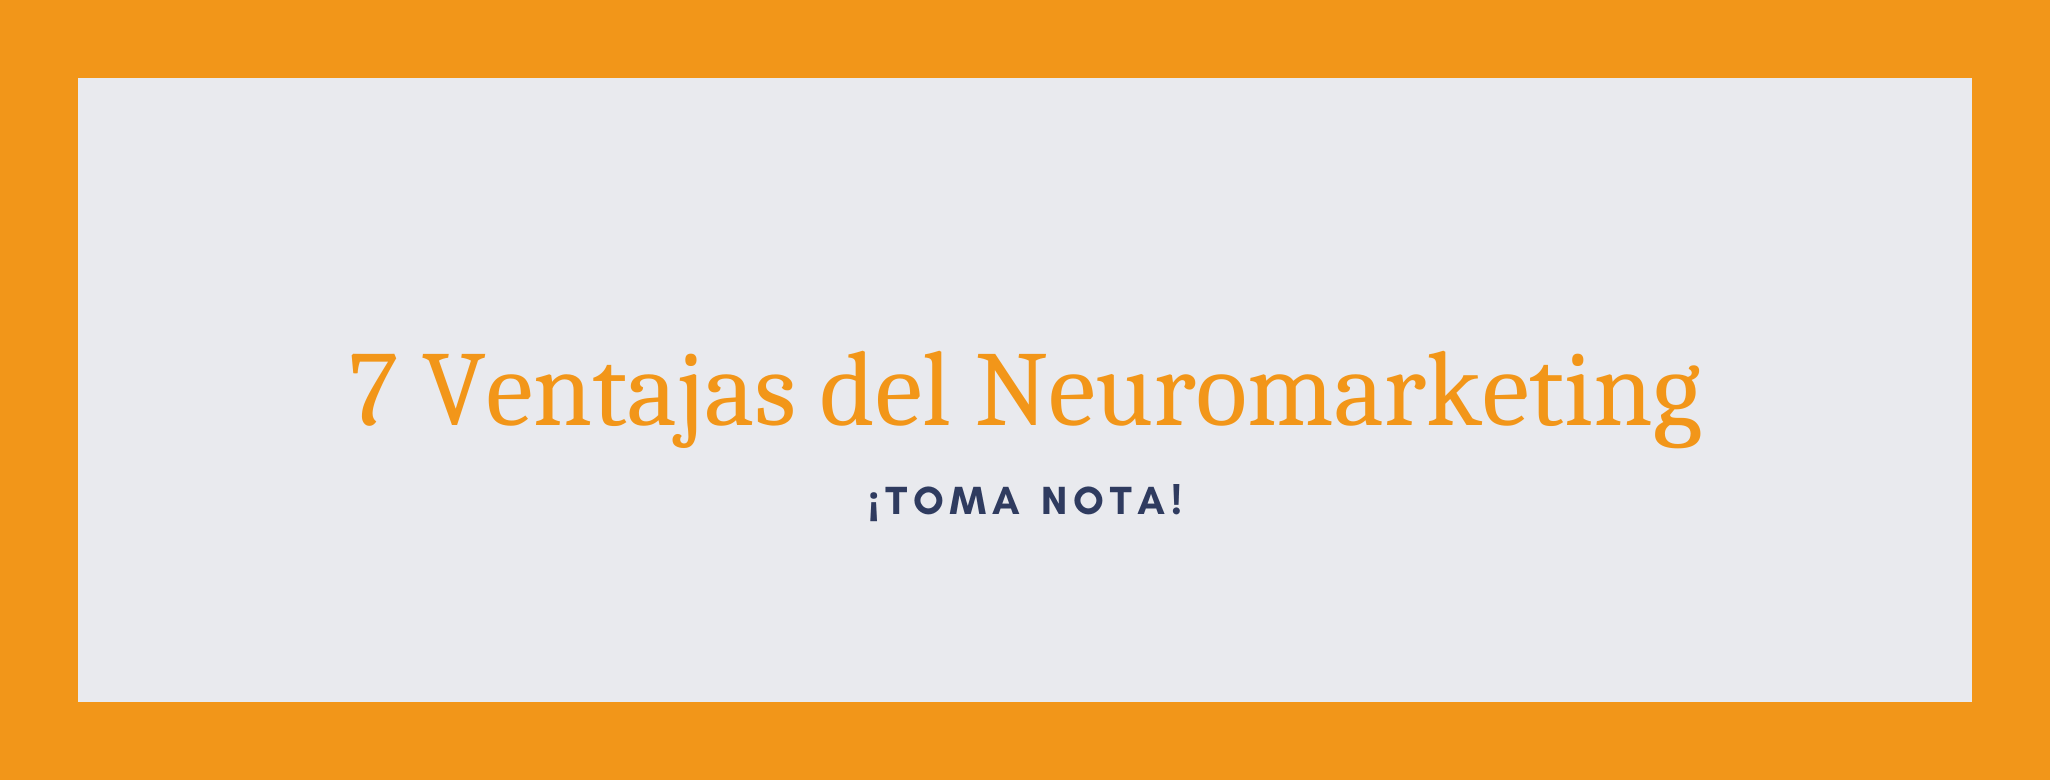 Ventajas del neuromarketing